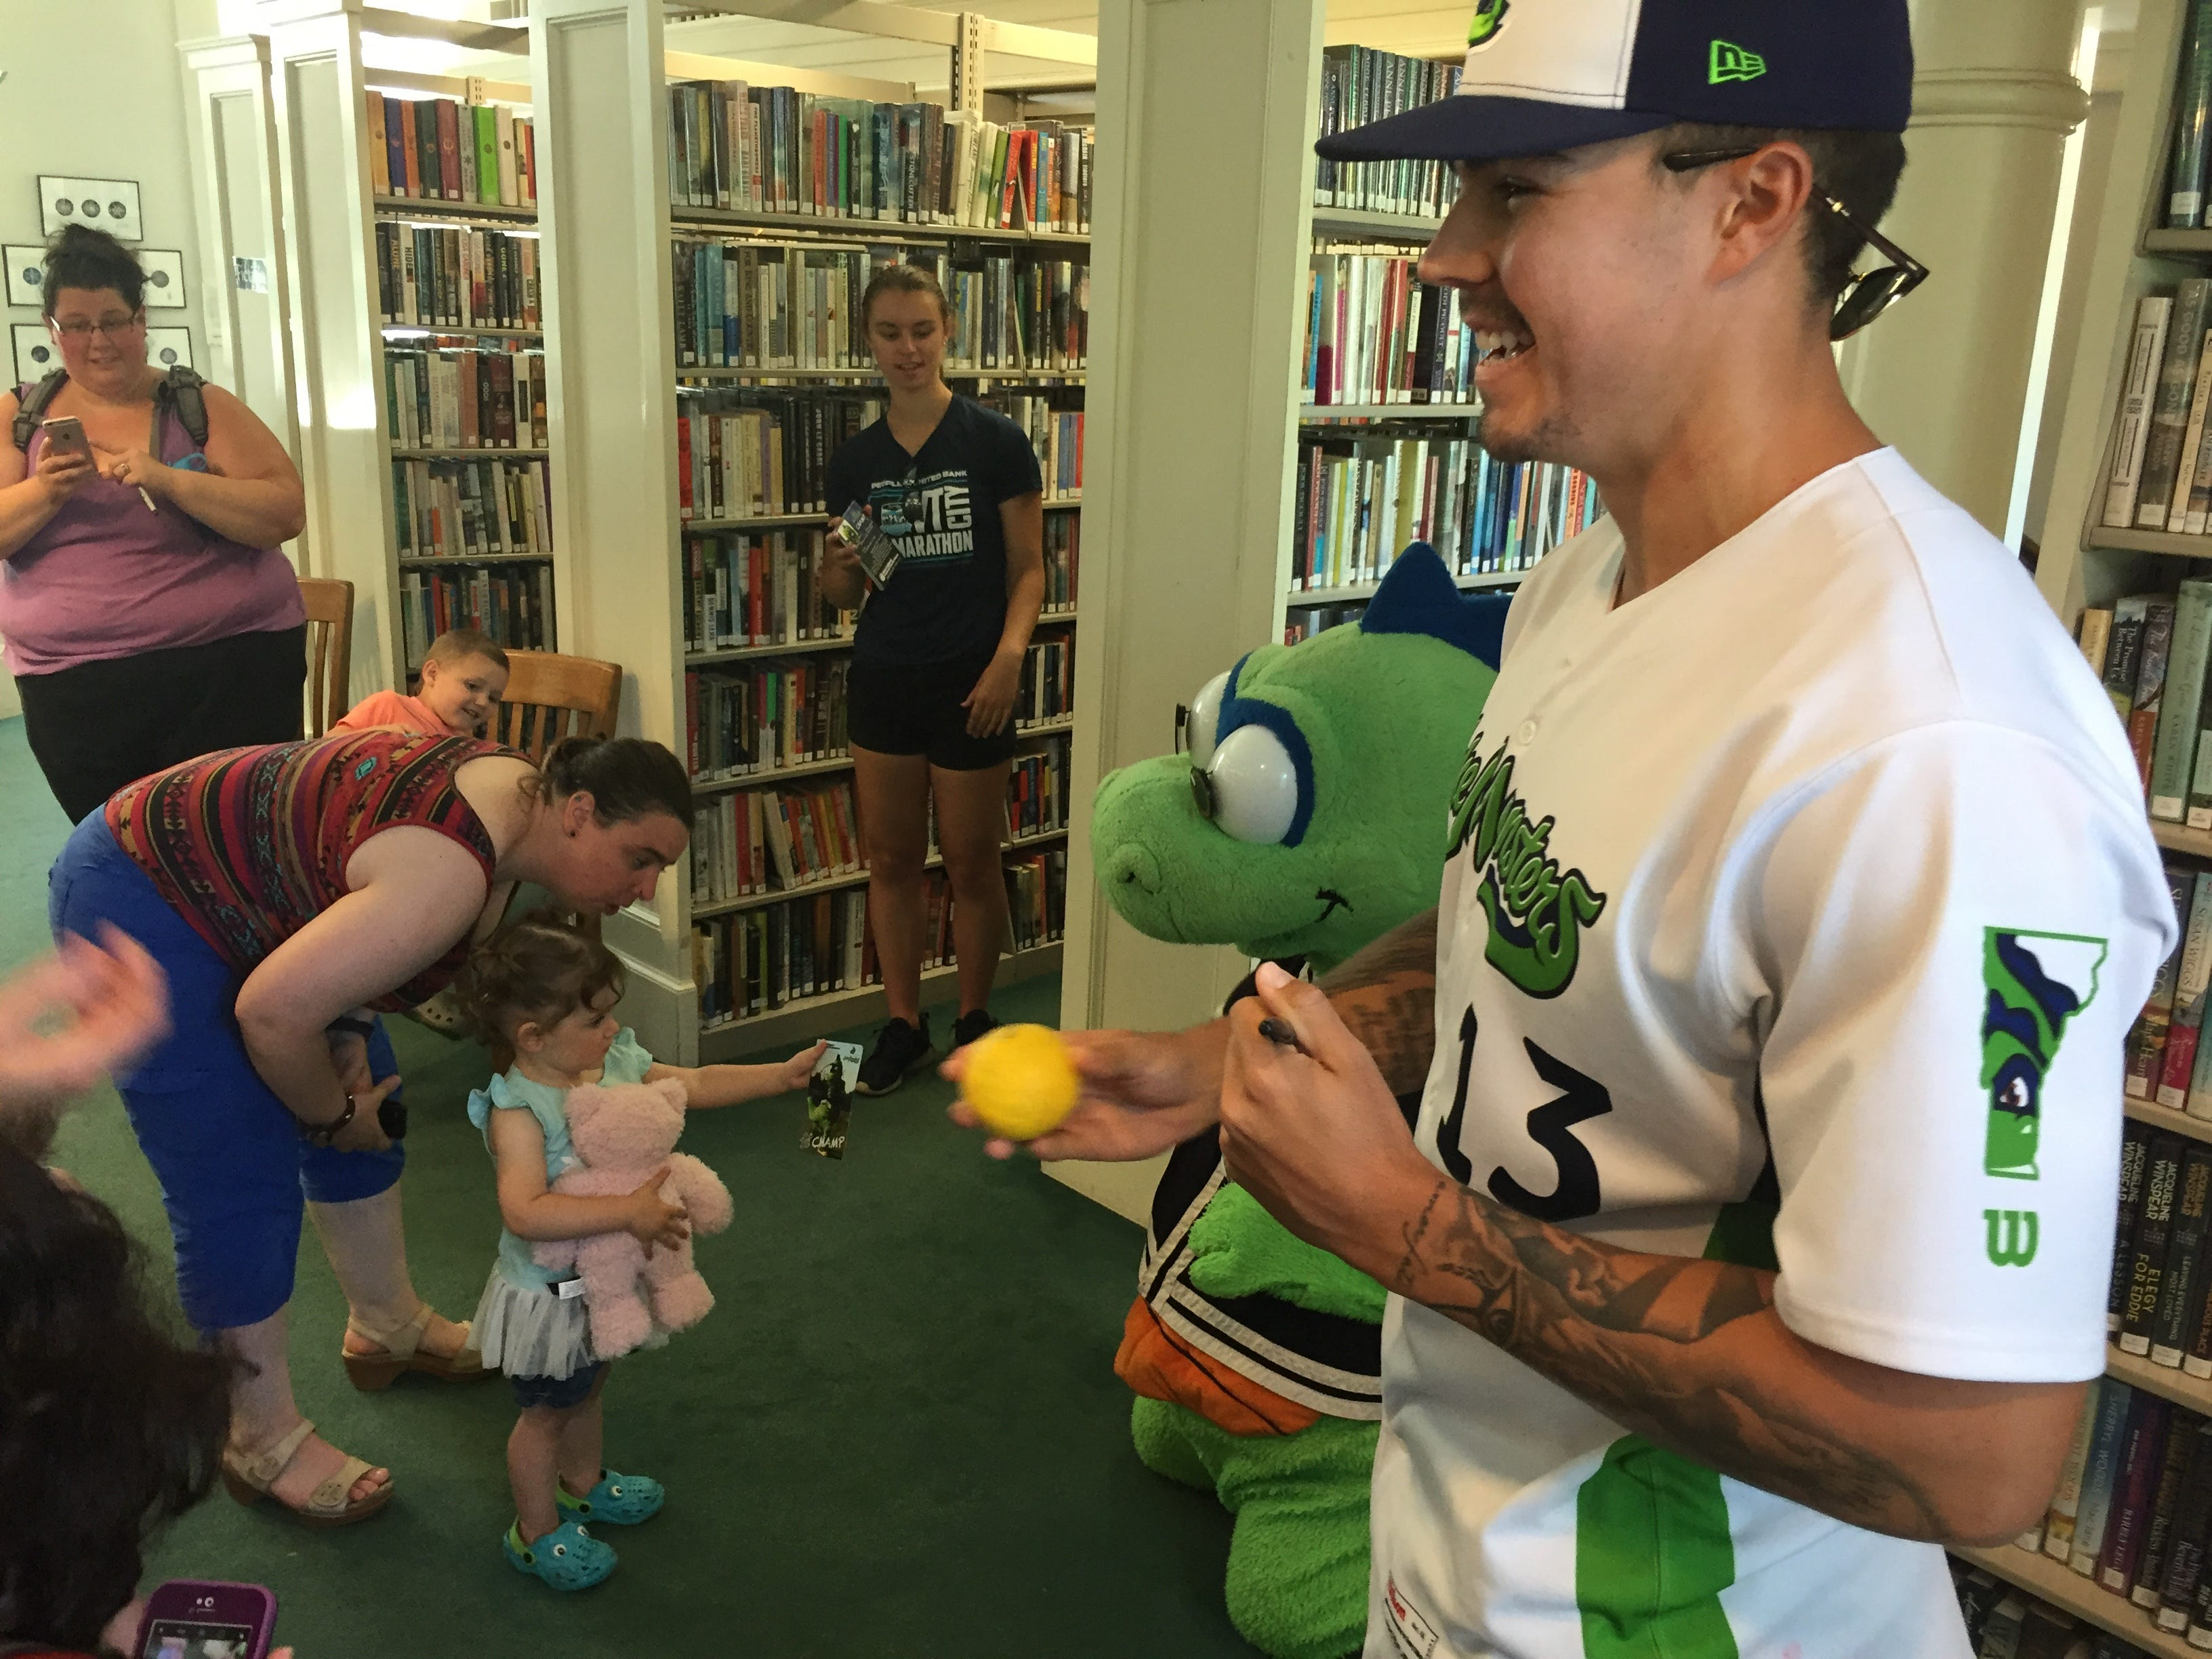 A day in the life of an MiLB Vermont Lake Monster